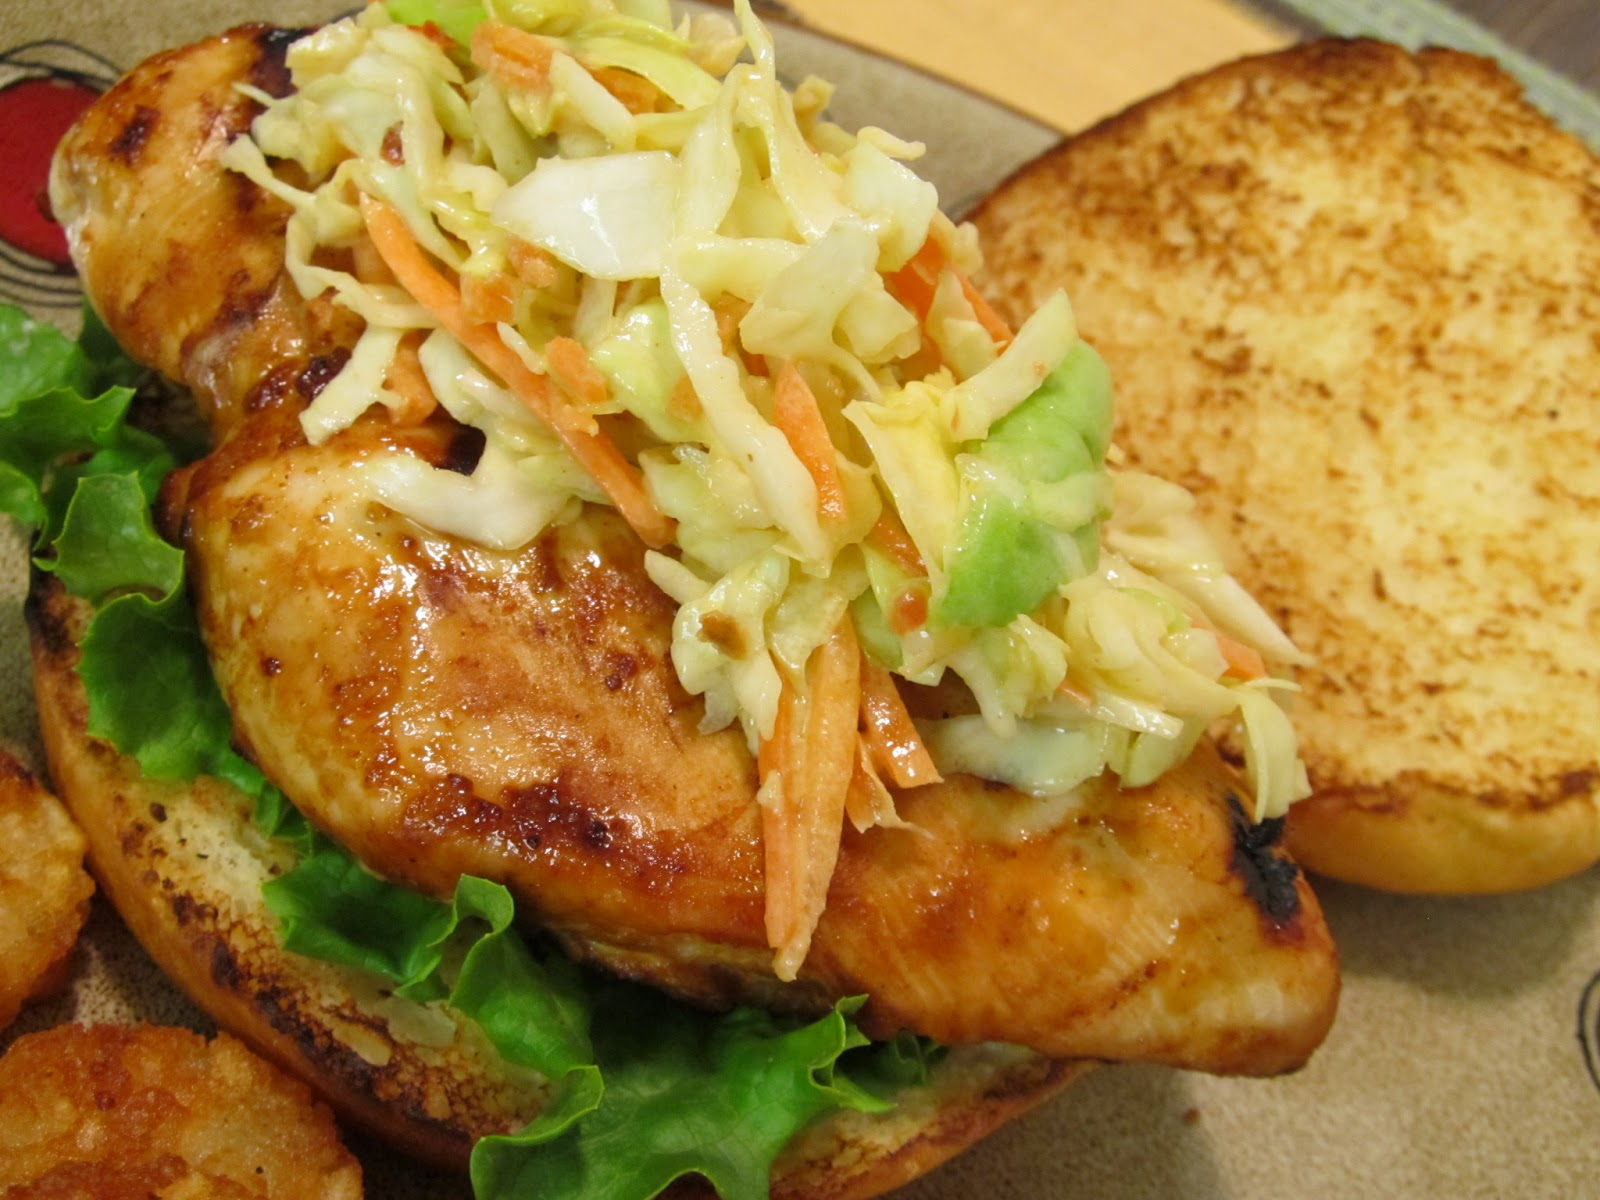 Grilled Asian Chicken Sandwich with Slaw